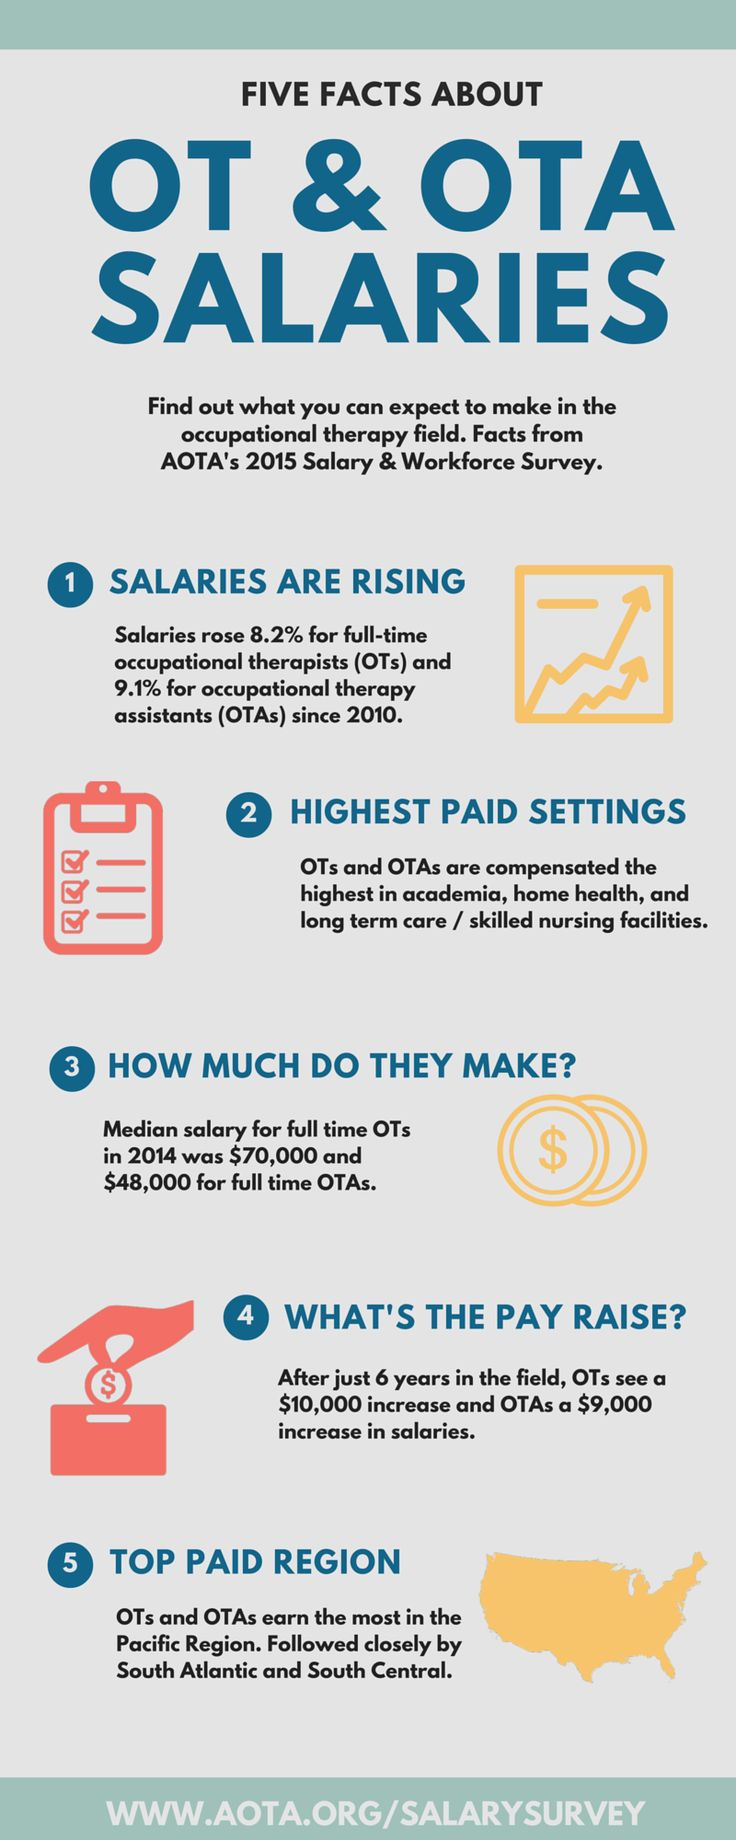 Find out what you can expect to make in the occupational therapy field. Five facts about OT & OTA salaries